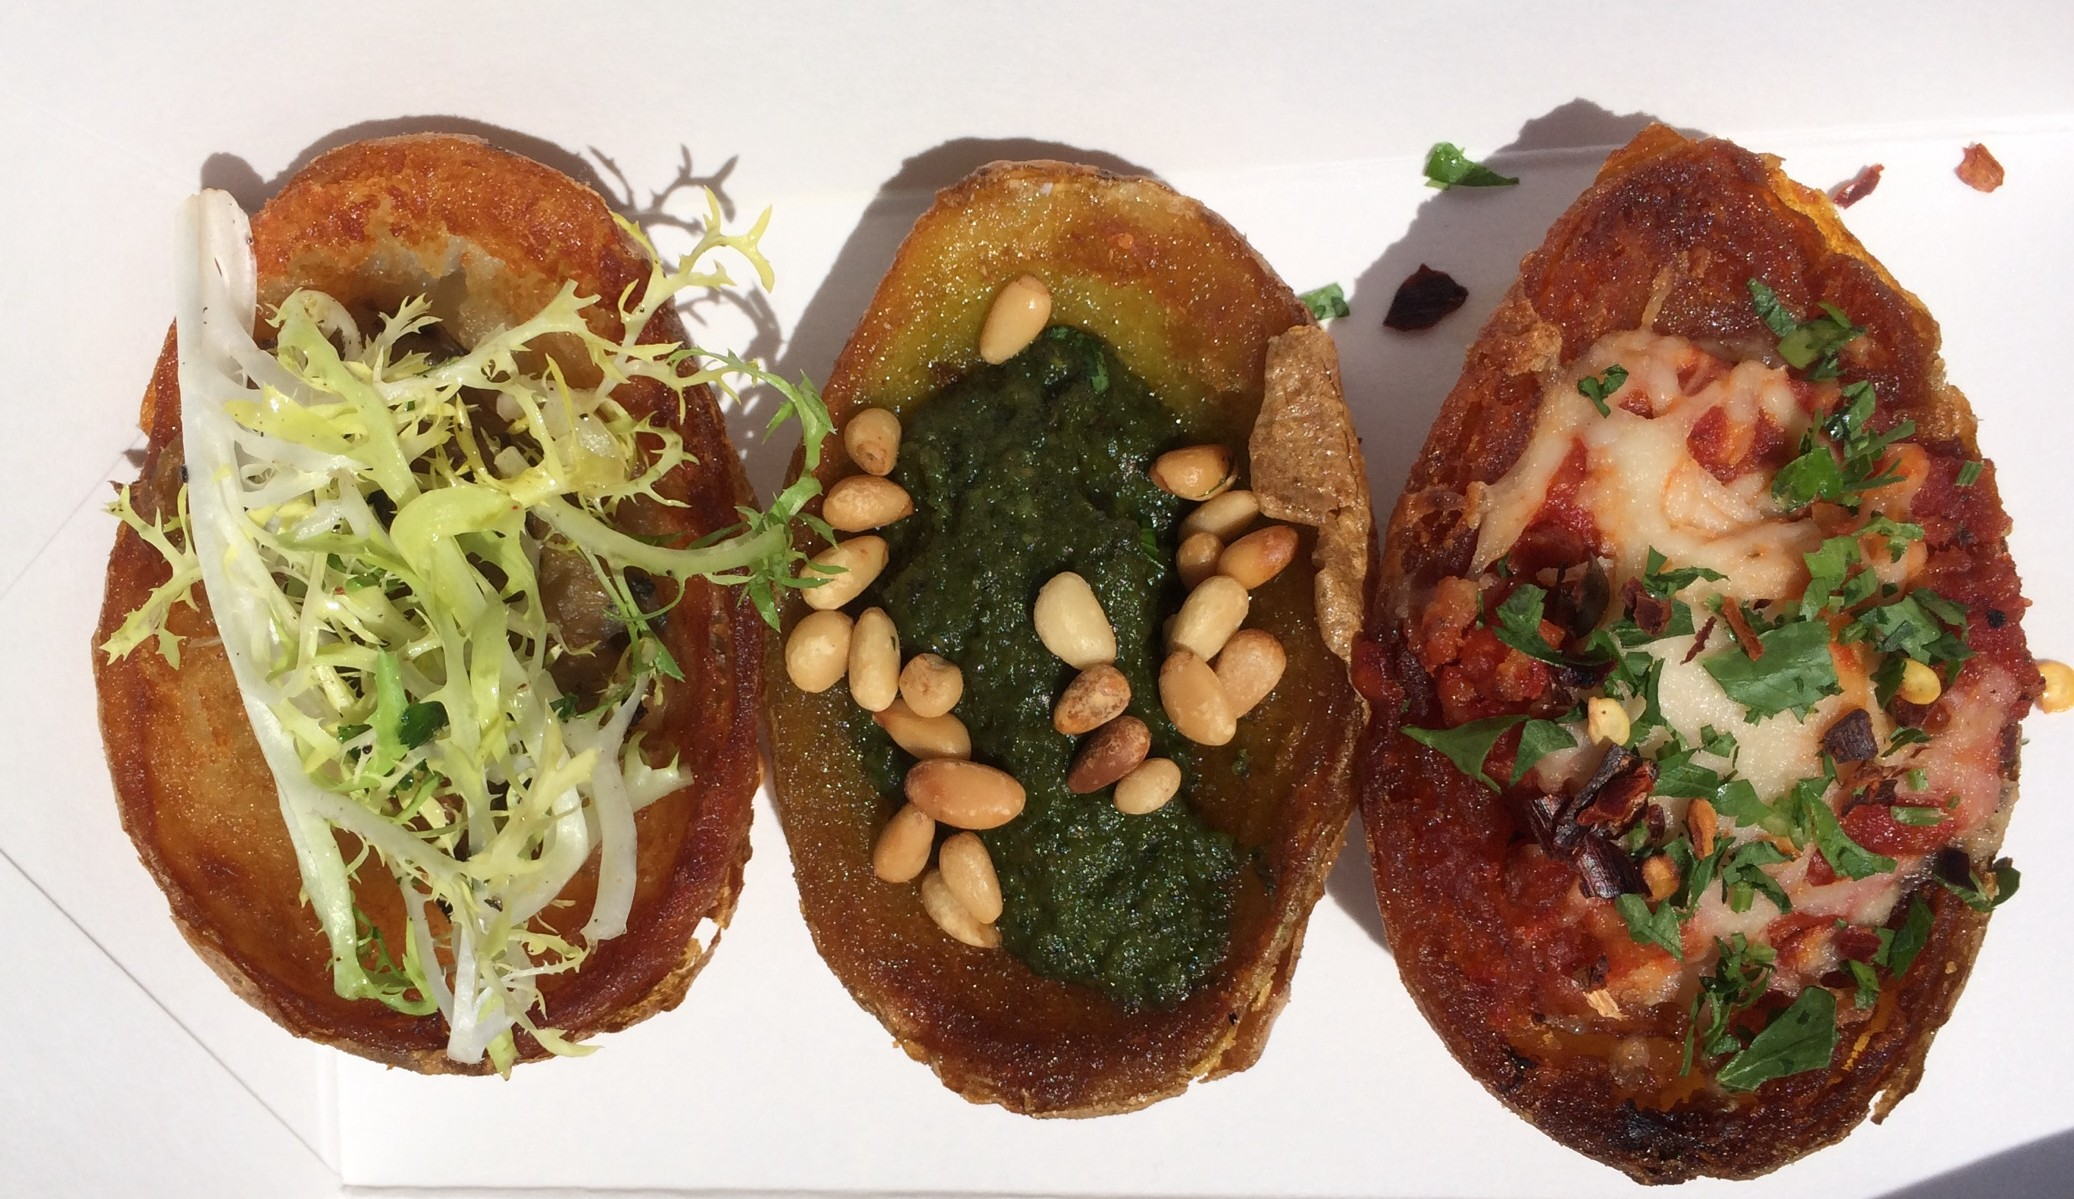 Vegan Potato Skins from Crossroads